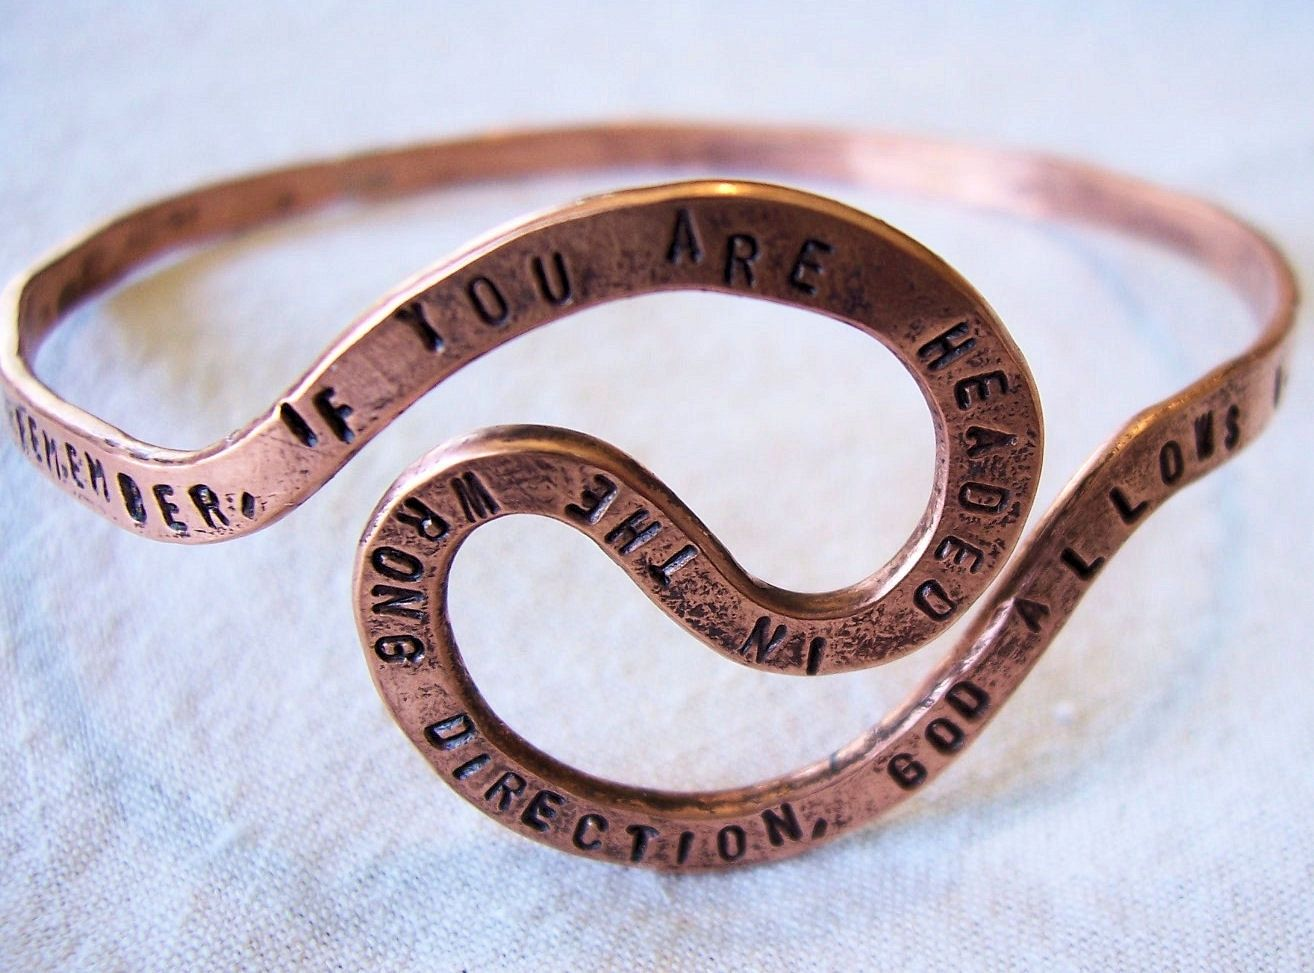 Hand Crafted Personalized Memorial U Turn Quote Copper Bangle Bracelet By Freckle Patch Design Custommade